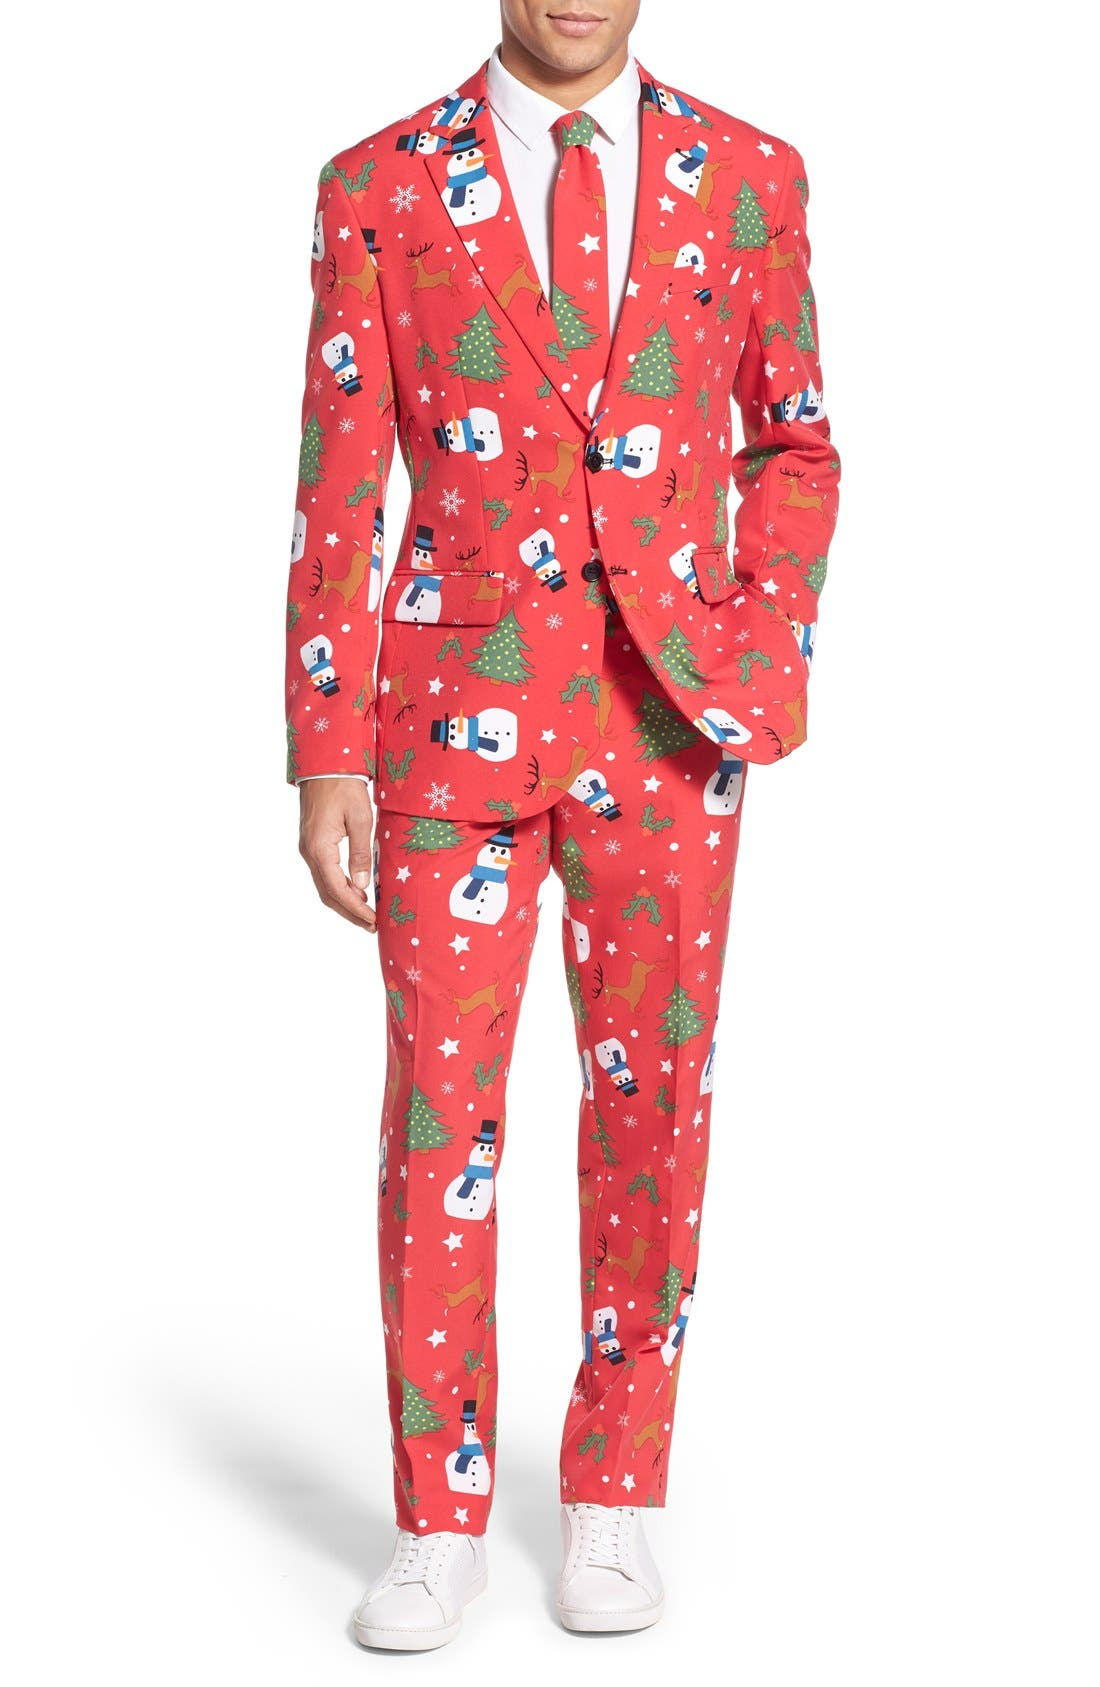 OppoSuits 'Christmaster' Holiday Suit & Tie